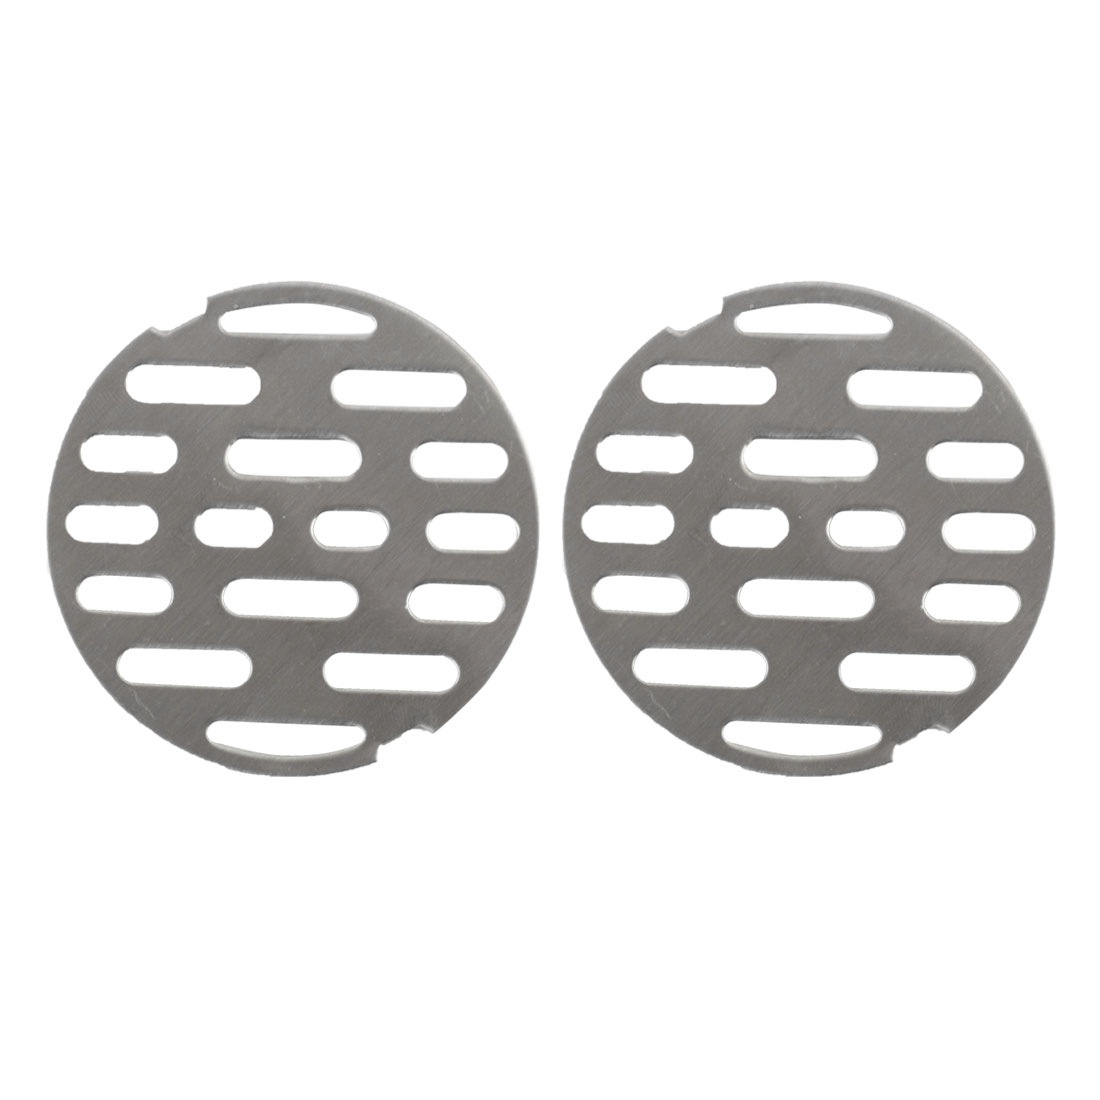 2pcs 2.6 Inch Snap-in Floor Drain Cover Hair Catcher Sink Drain Strainer Stopper